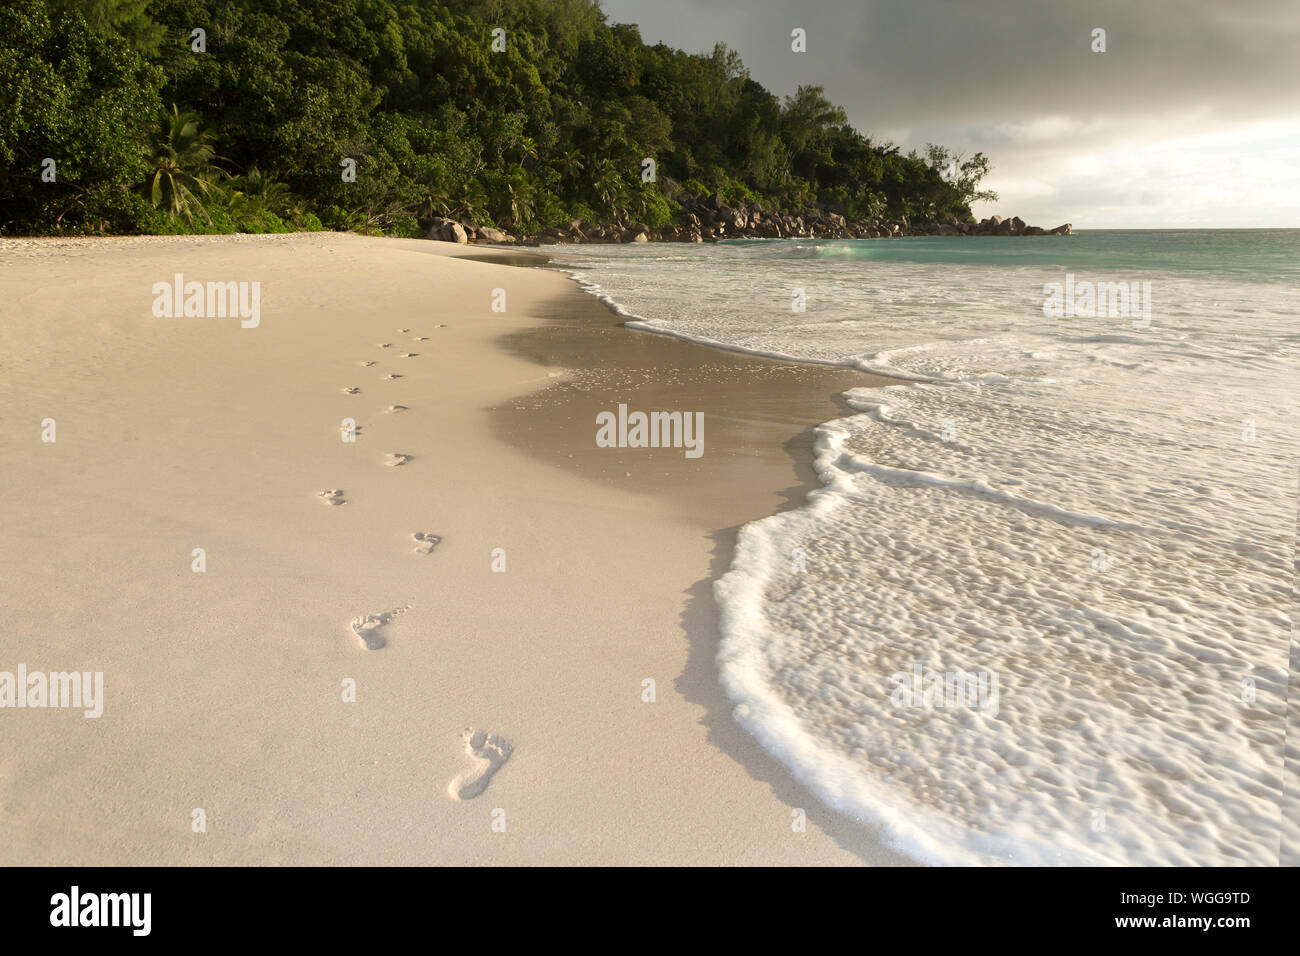 Scenic View Of Beach Against Sky Stock Photo